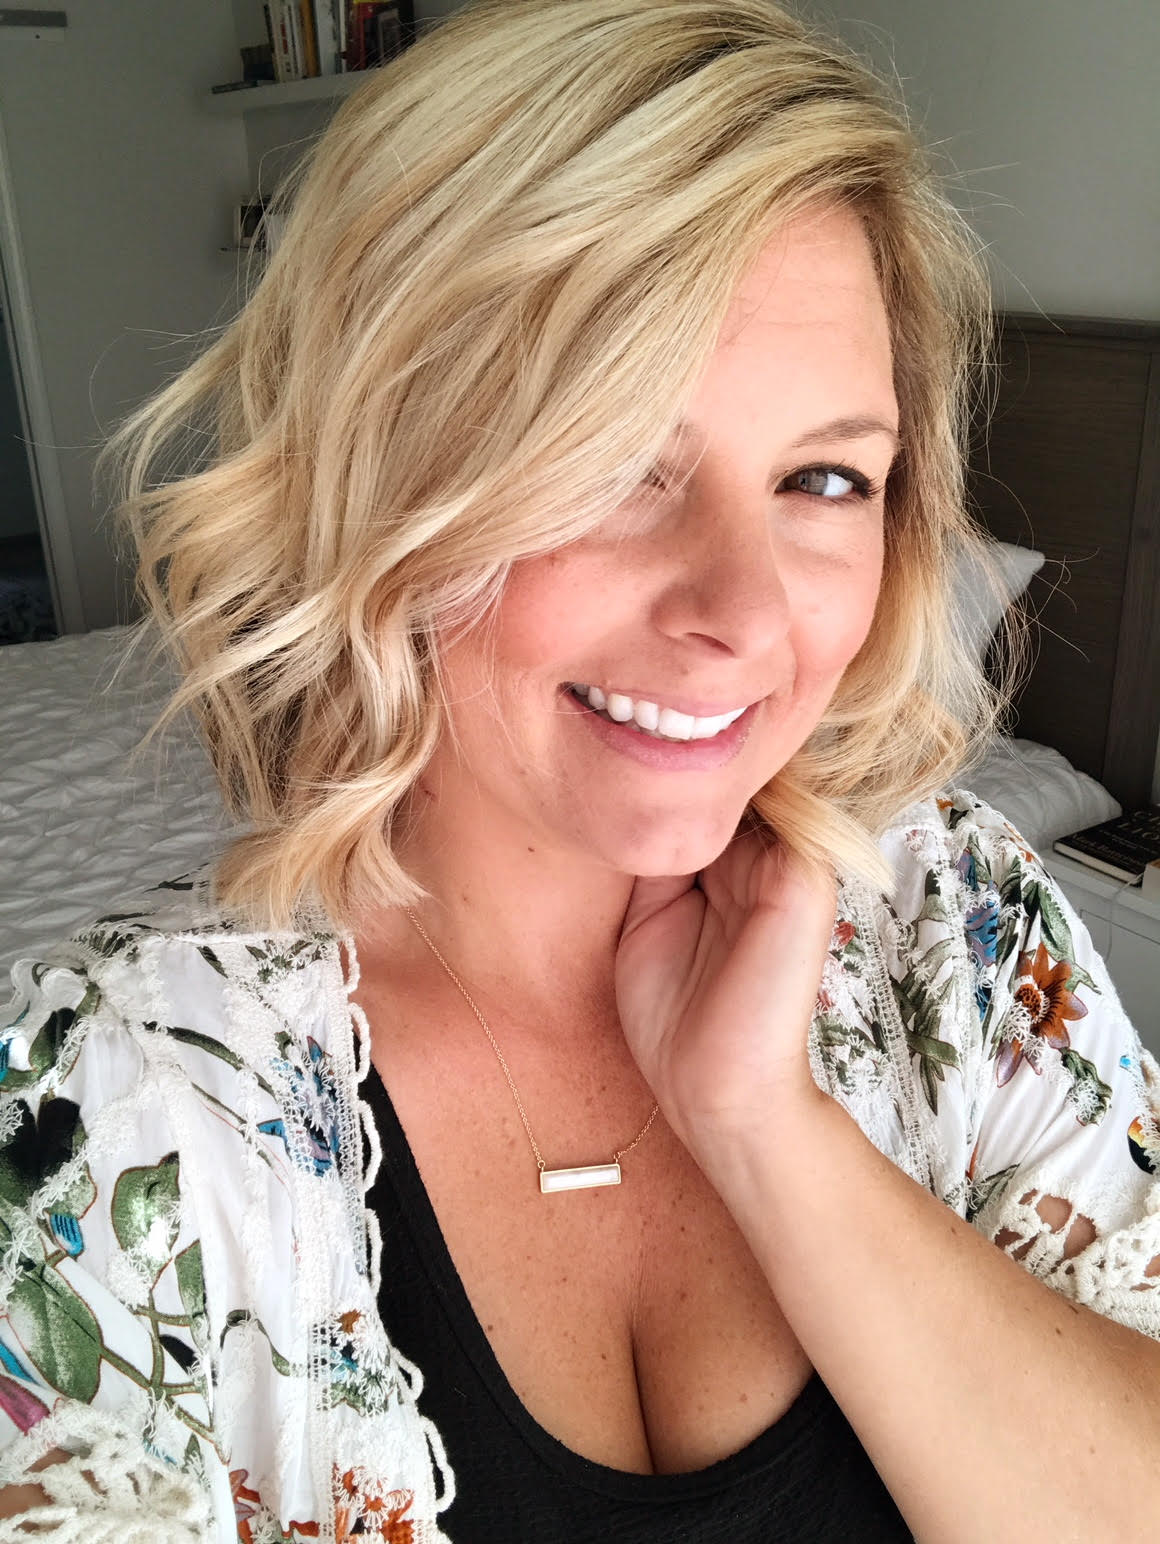 """#SkinBabe Jessica Limeberry approaches life & skincare with a """"simple is best"""" mantra!"""